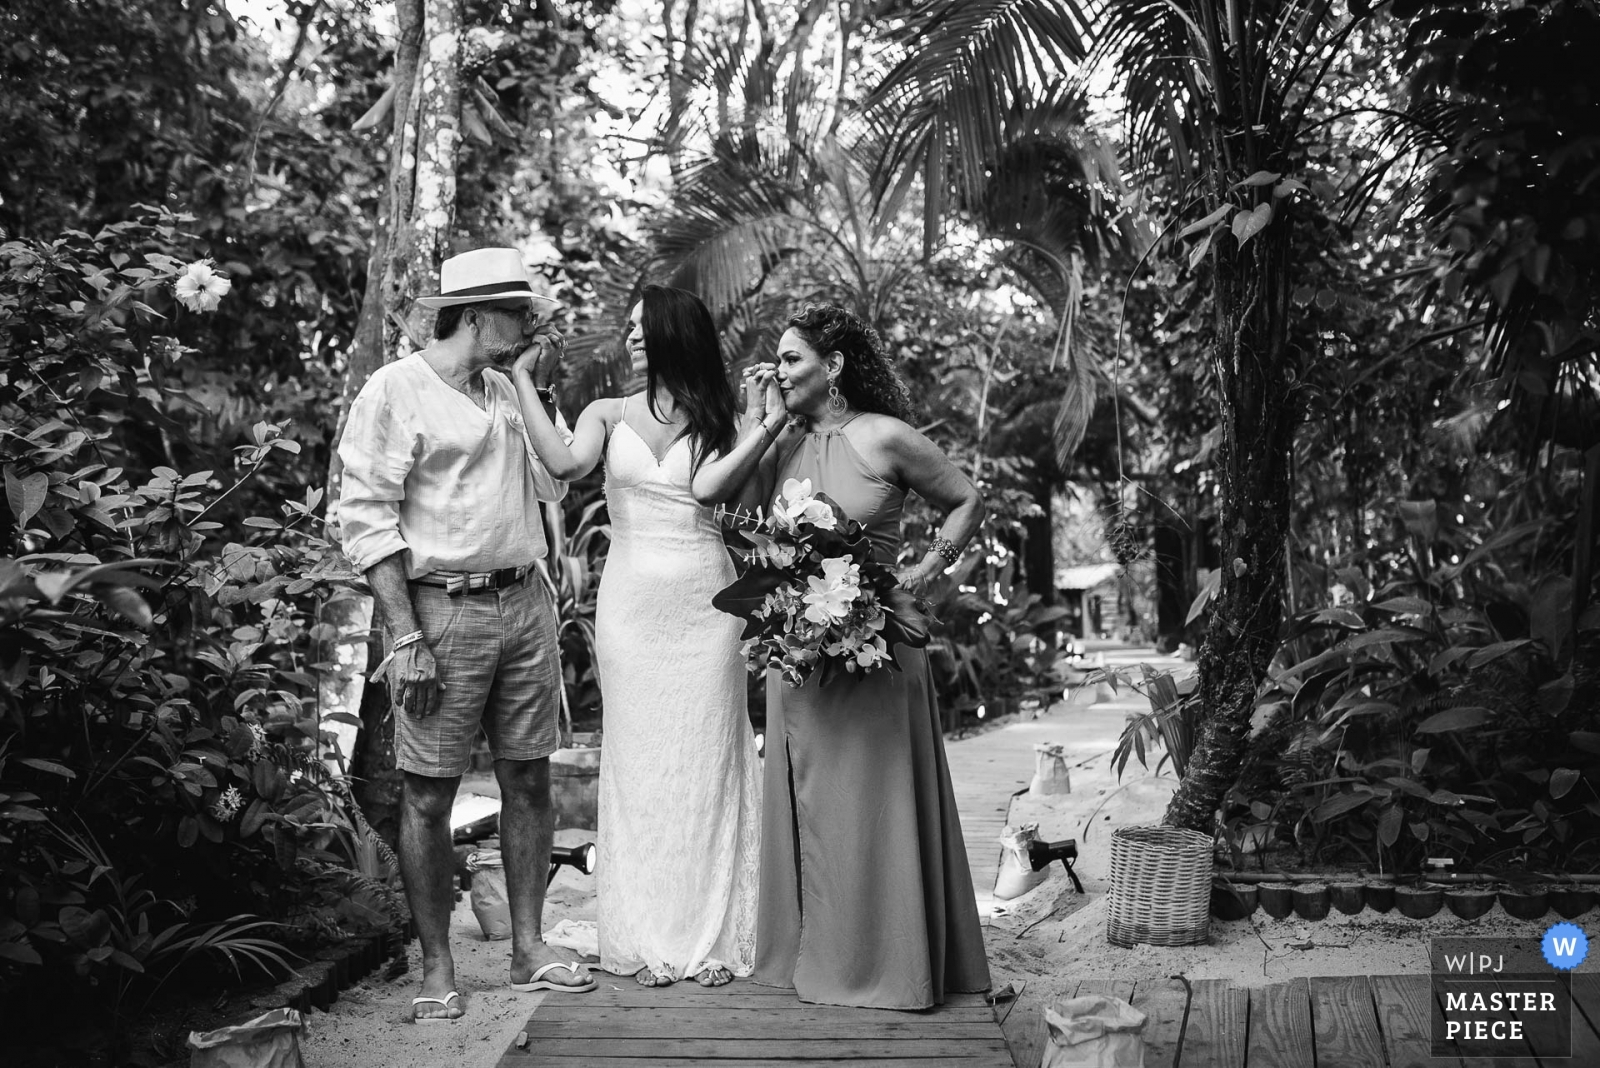 A minute before the bride enters the ceremony, she has her hands kissed by her parents. - Rio de Janeiro, Brazil Wedding Photography -  | Pousada Bahia Bonita - Trancoso - Bahia - Brazil